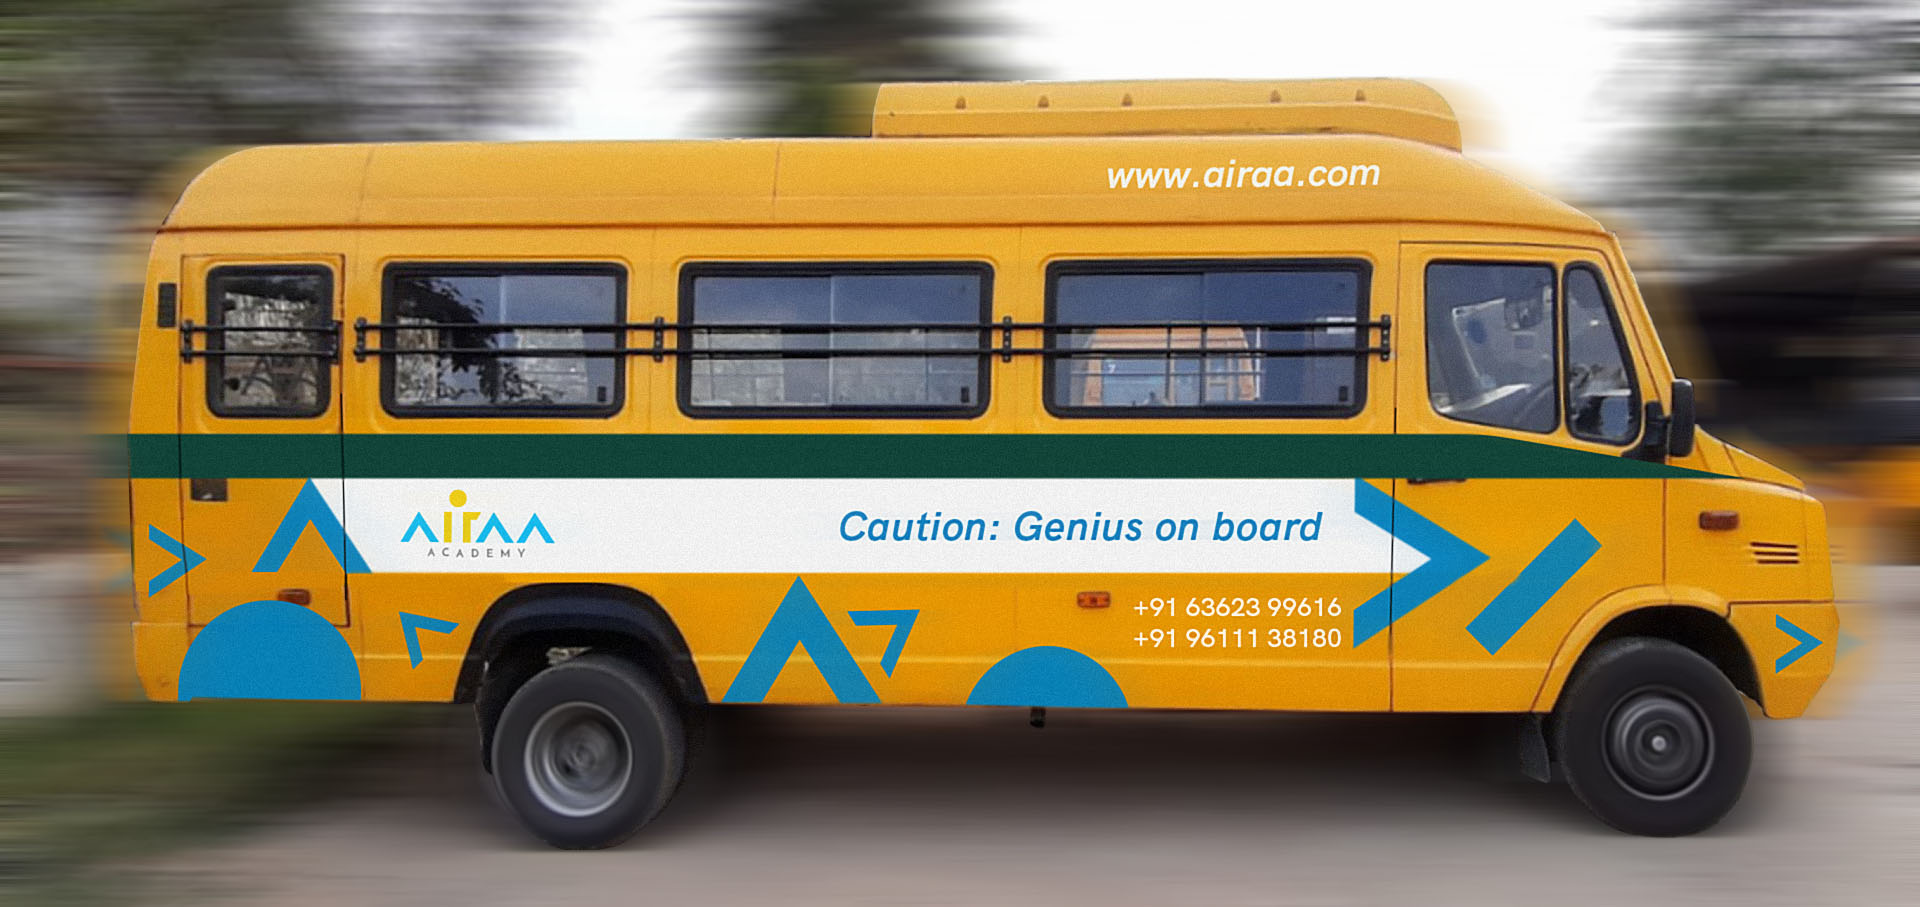 Education Airaa Rezonant Design Bus 1